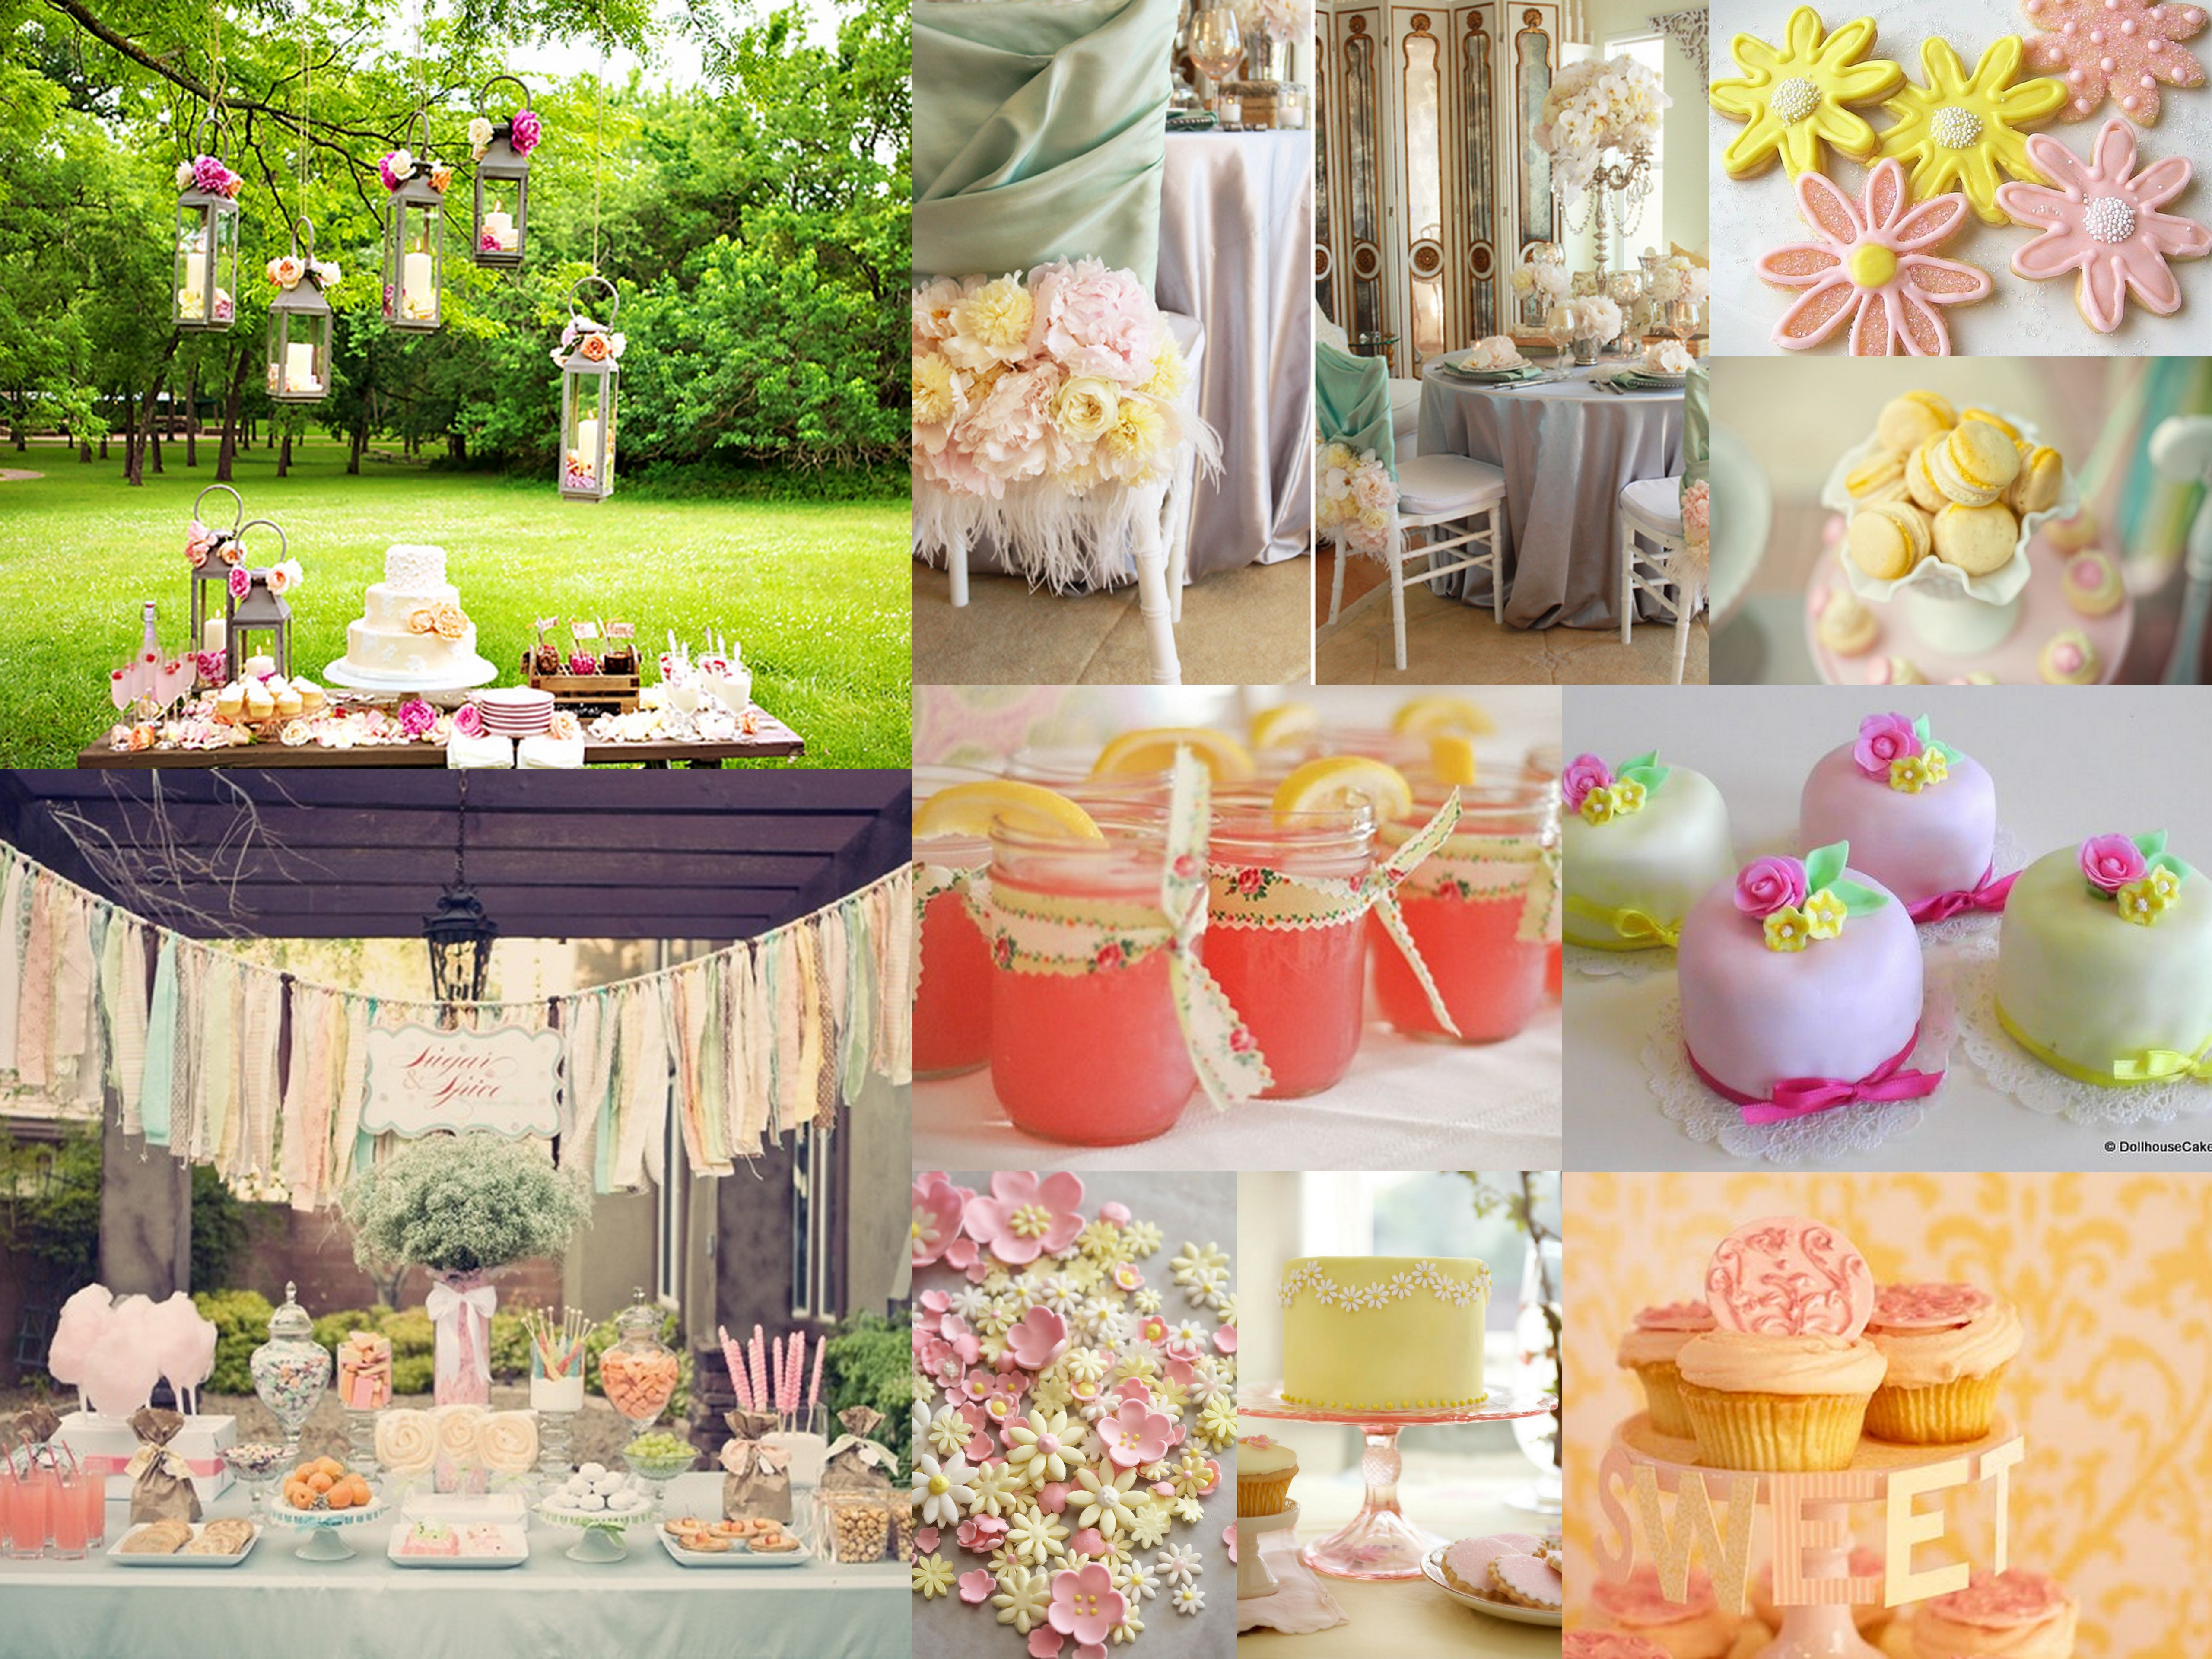 Marry Month of May Wedding Theme | Fantastical Wedding ...